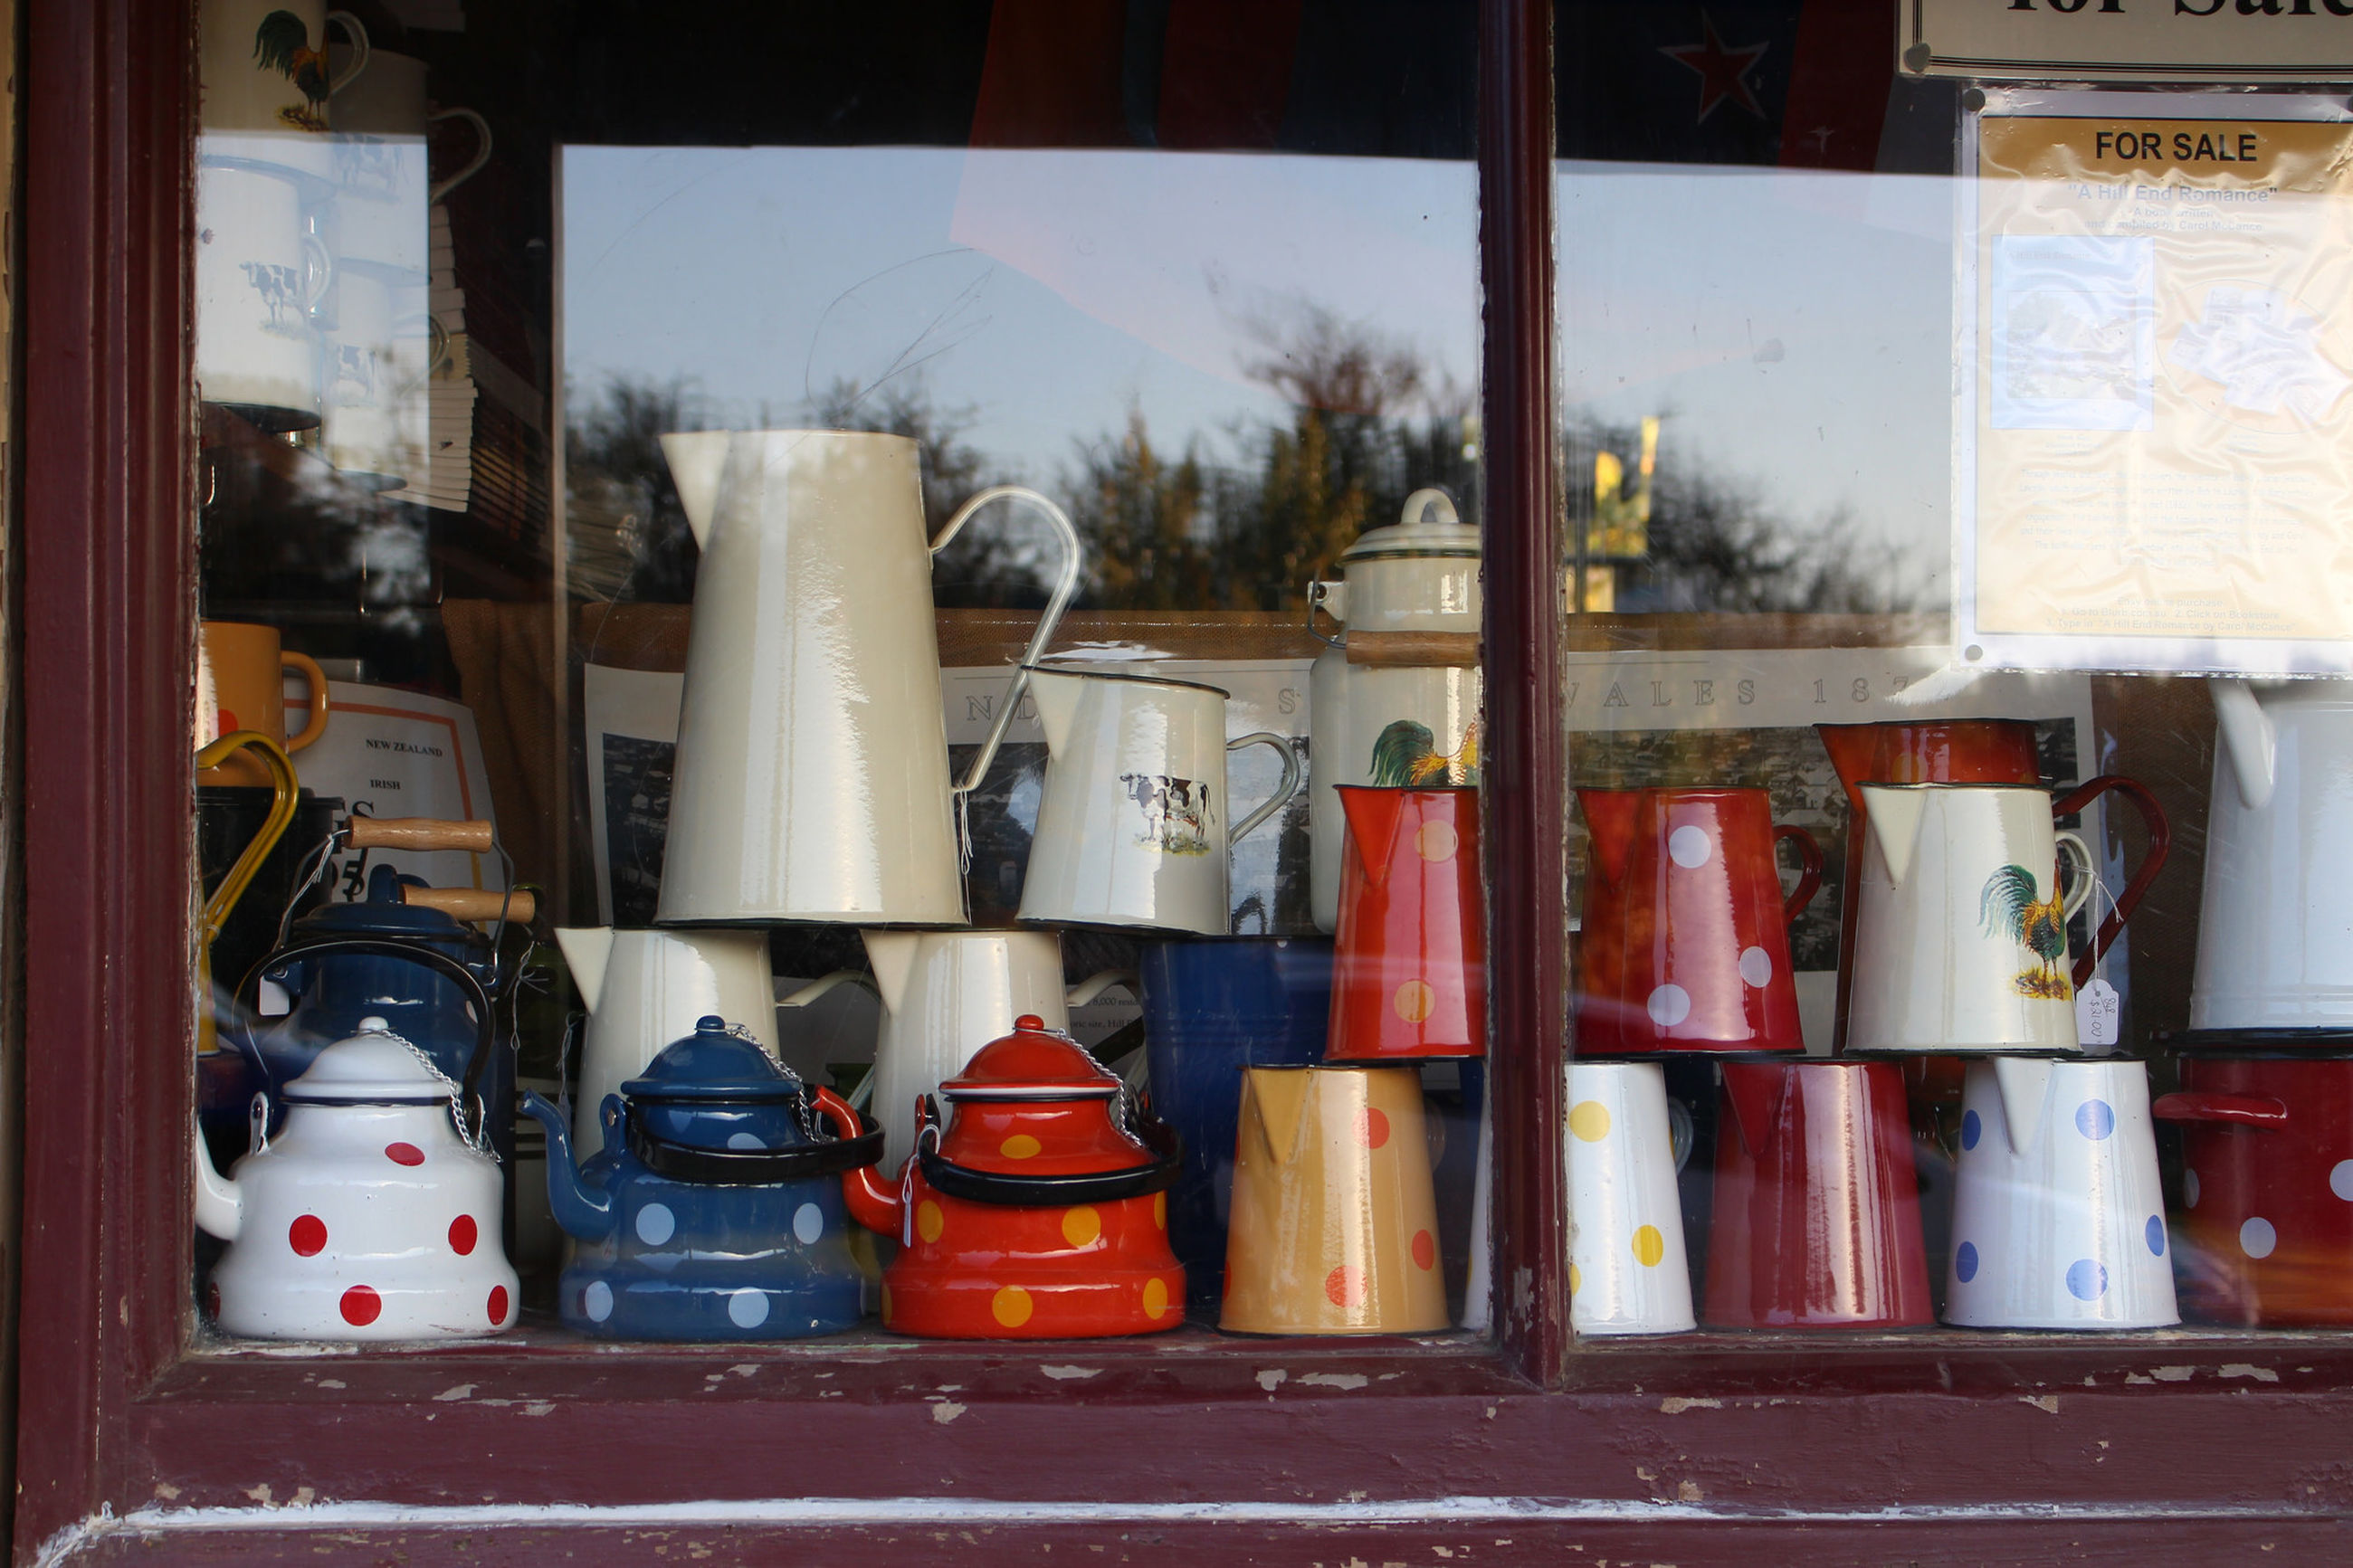 Teapots arranged on display widow for sale in shop